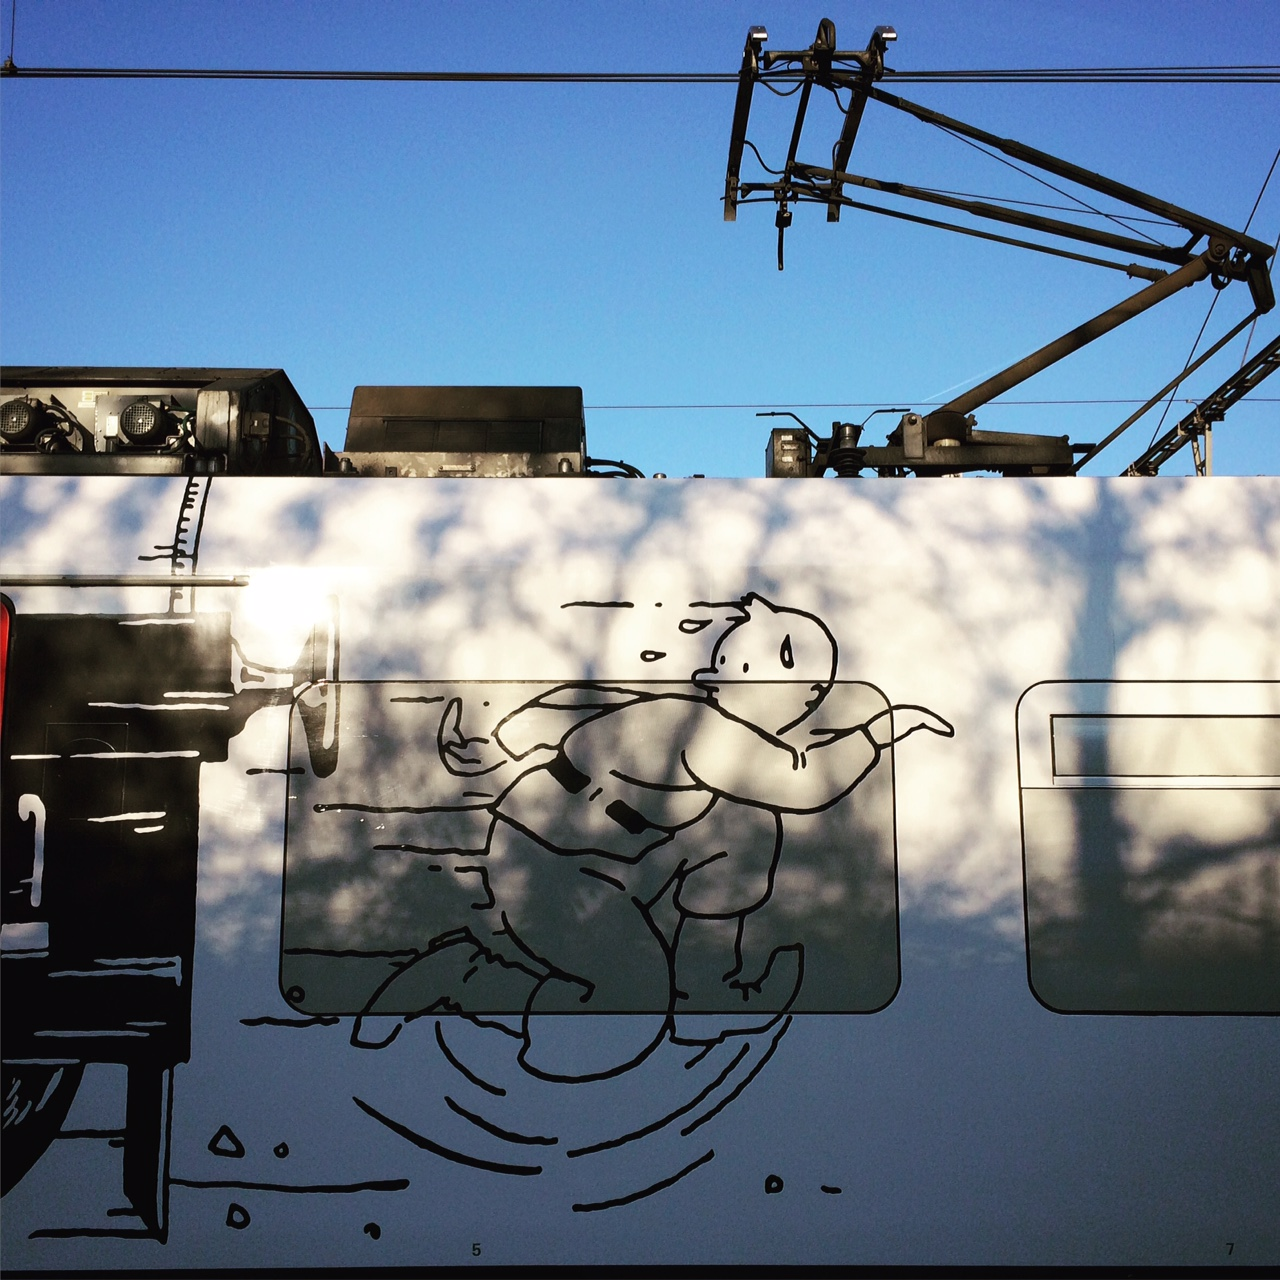 train-world-herge-tintin-copyright-misteremma-com